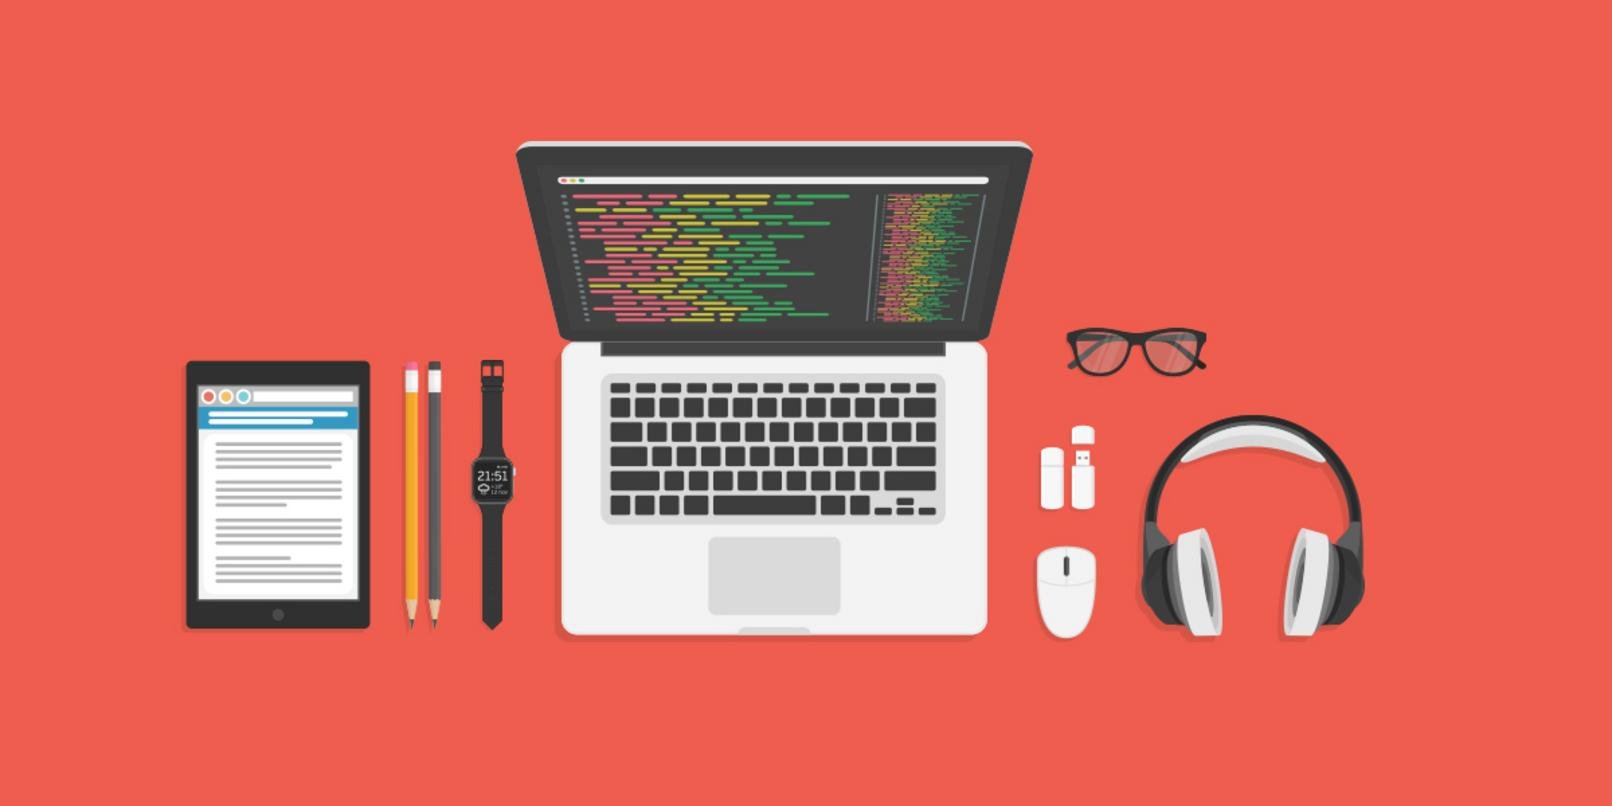 Make 2017 the year you become an elite coder with this top-down training